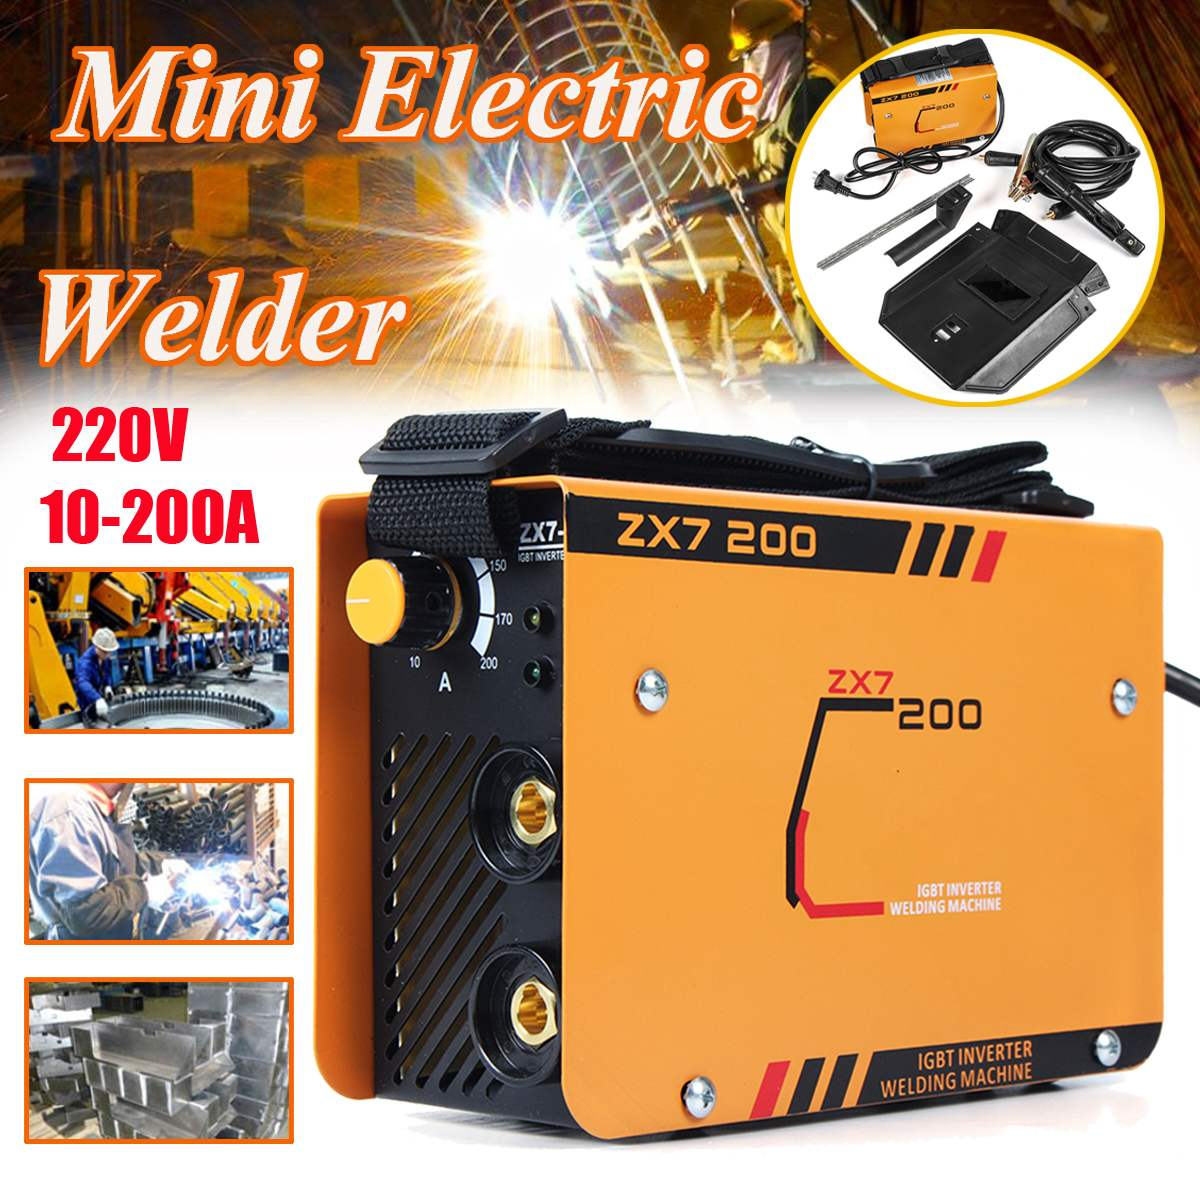 220V 10-200A Mini Electric Welding Machine ZX7-200MINI Arc Welder 2.5-3.2mm for Soldering and Electric Working Adjustable